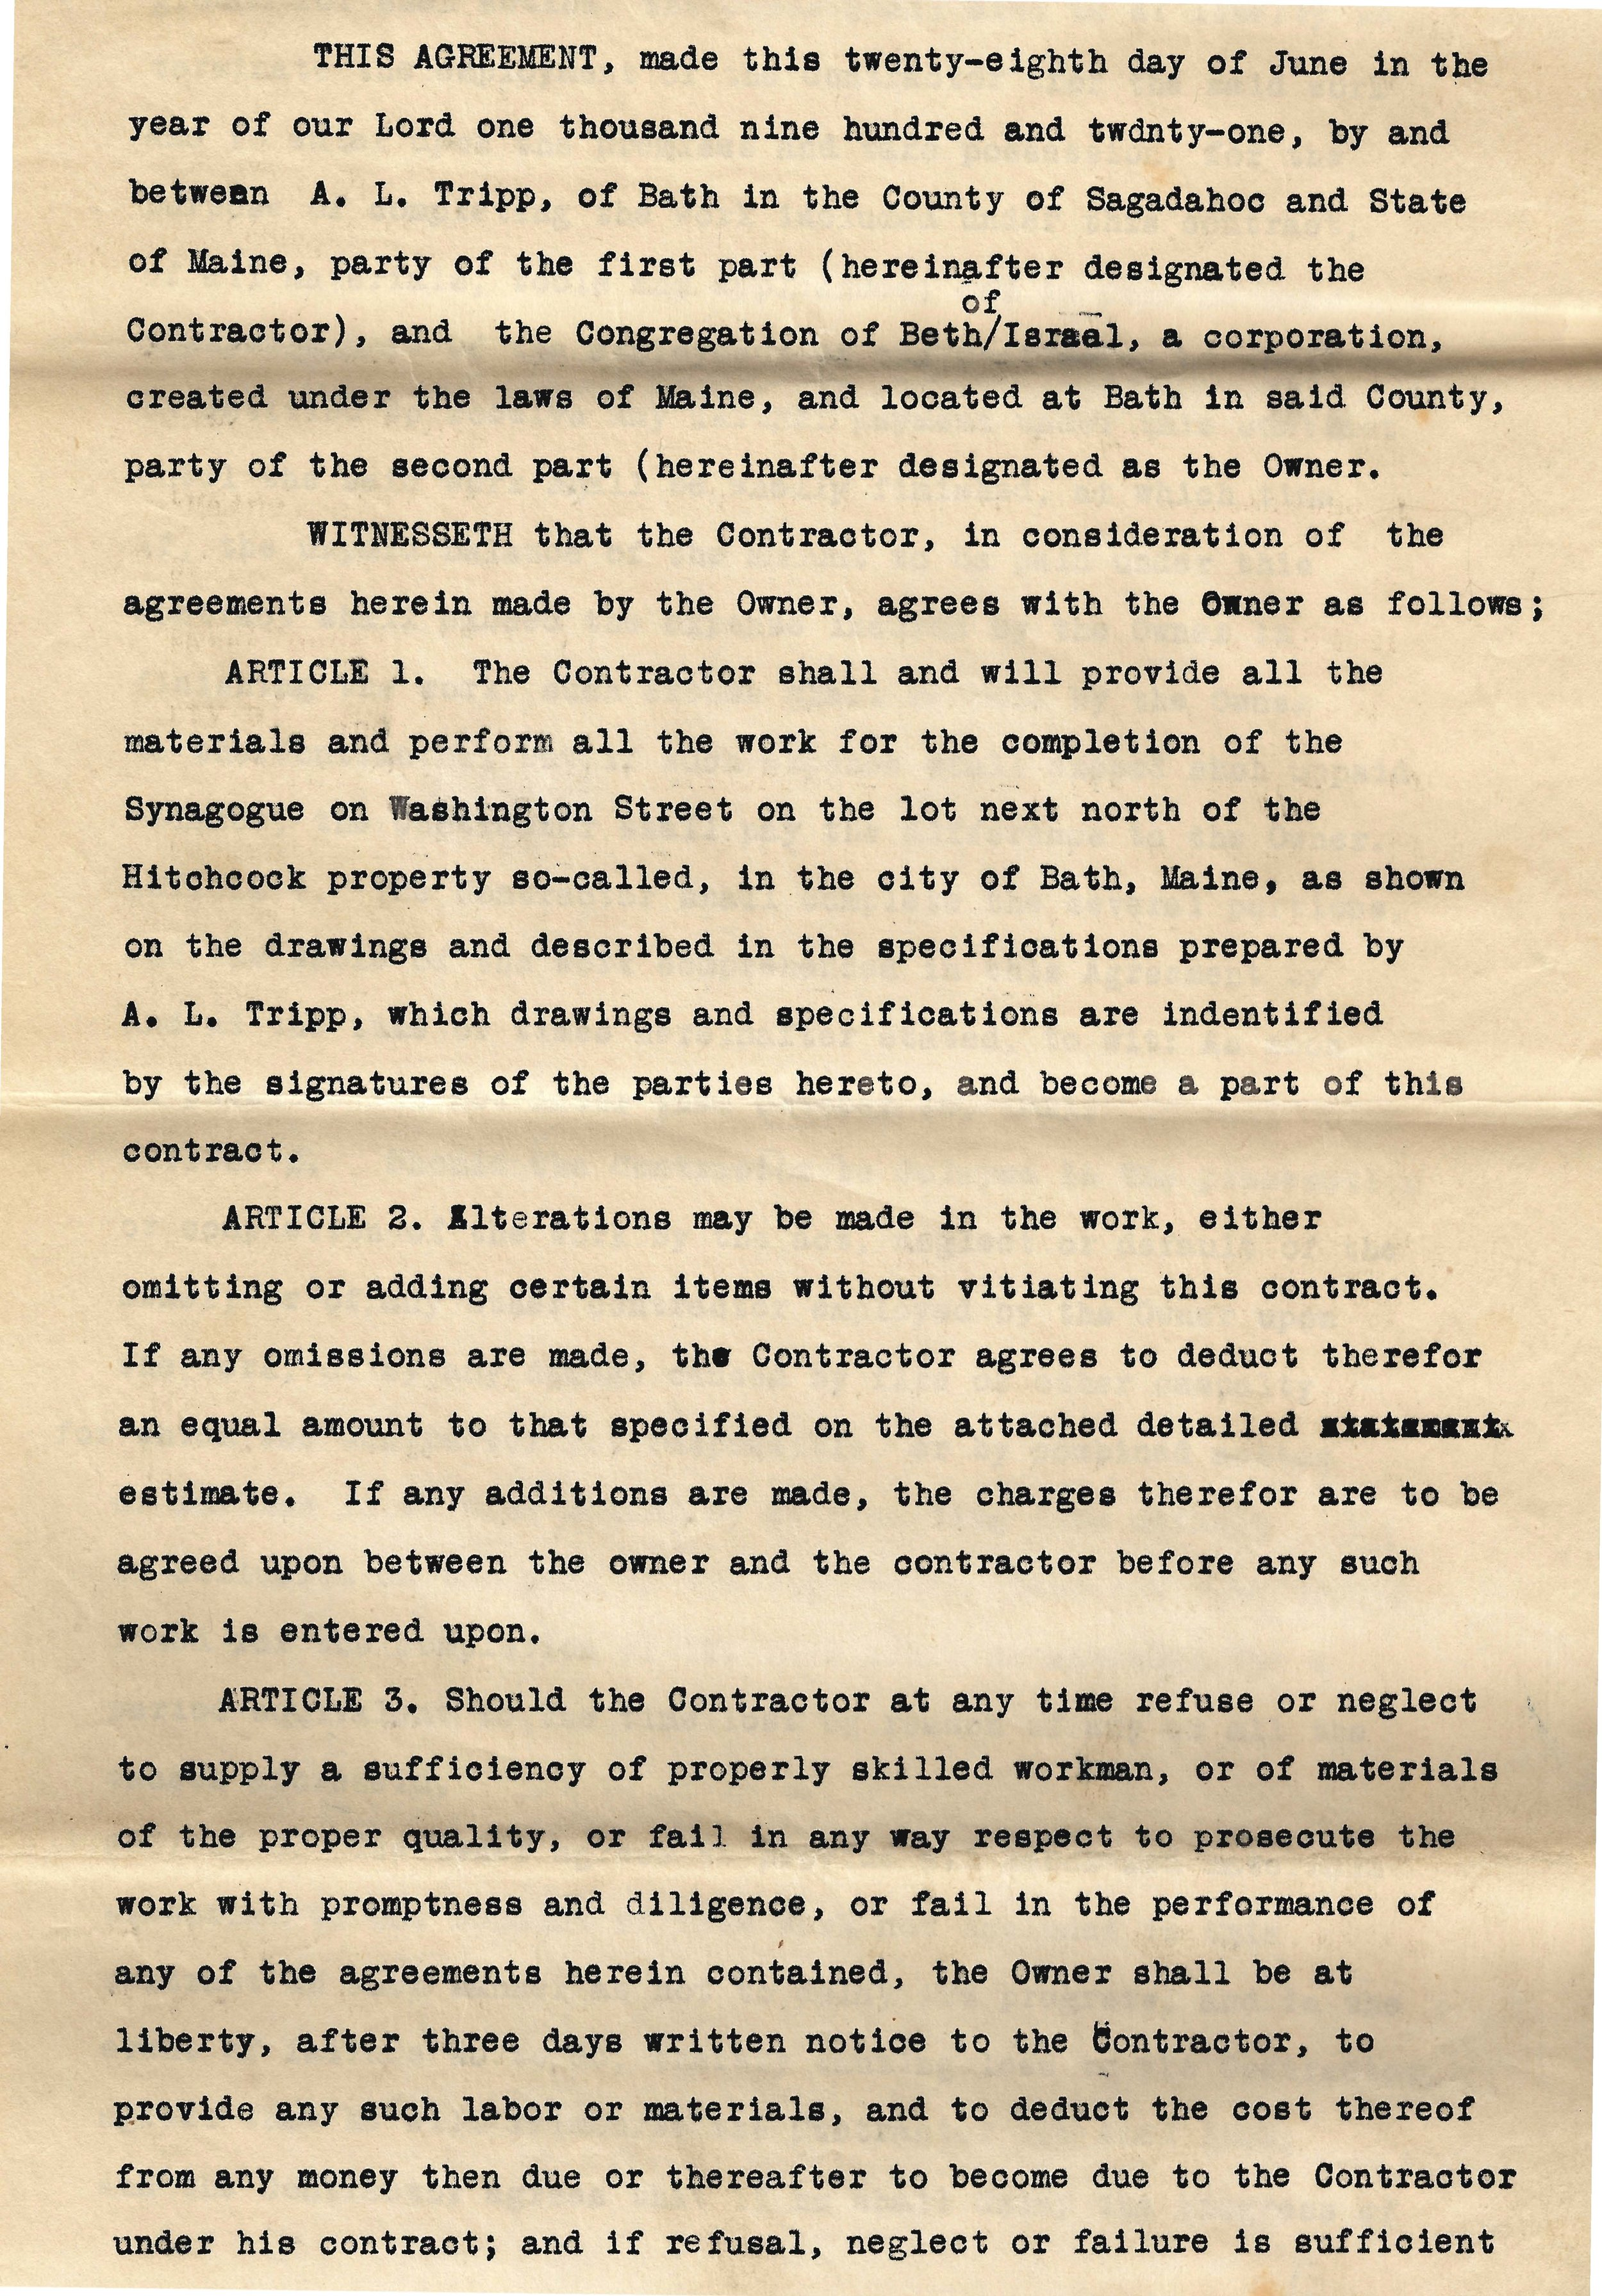 Contractor Agreement (1921)_Page_02.jpg